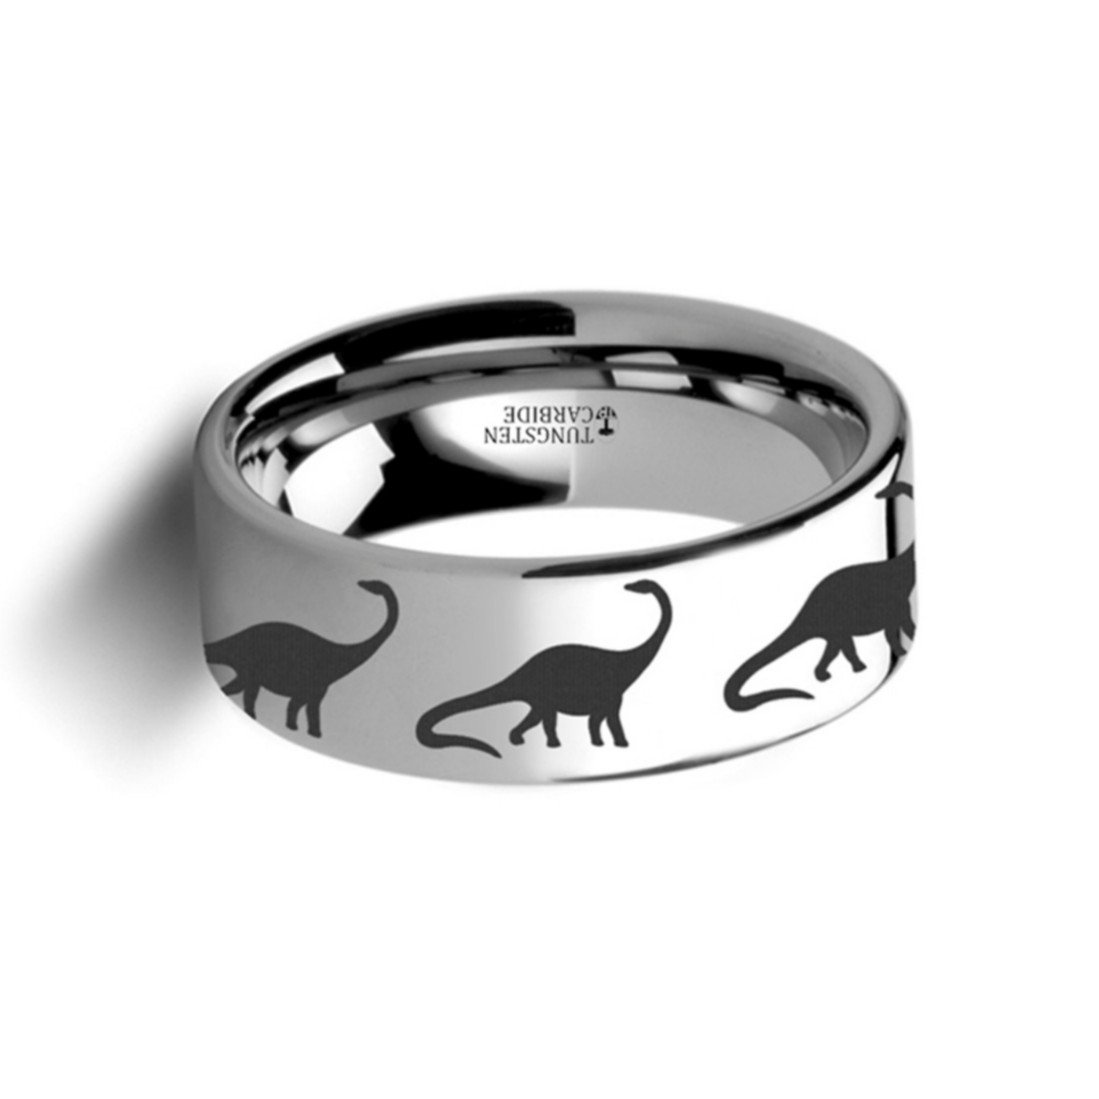 Thorsten Dinosaur Ring Brachiosaurus Prehistoric Paleo Flat Polished Tungsten Ring 8mm Wide Wedding Band from Roy Rose Jewelry